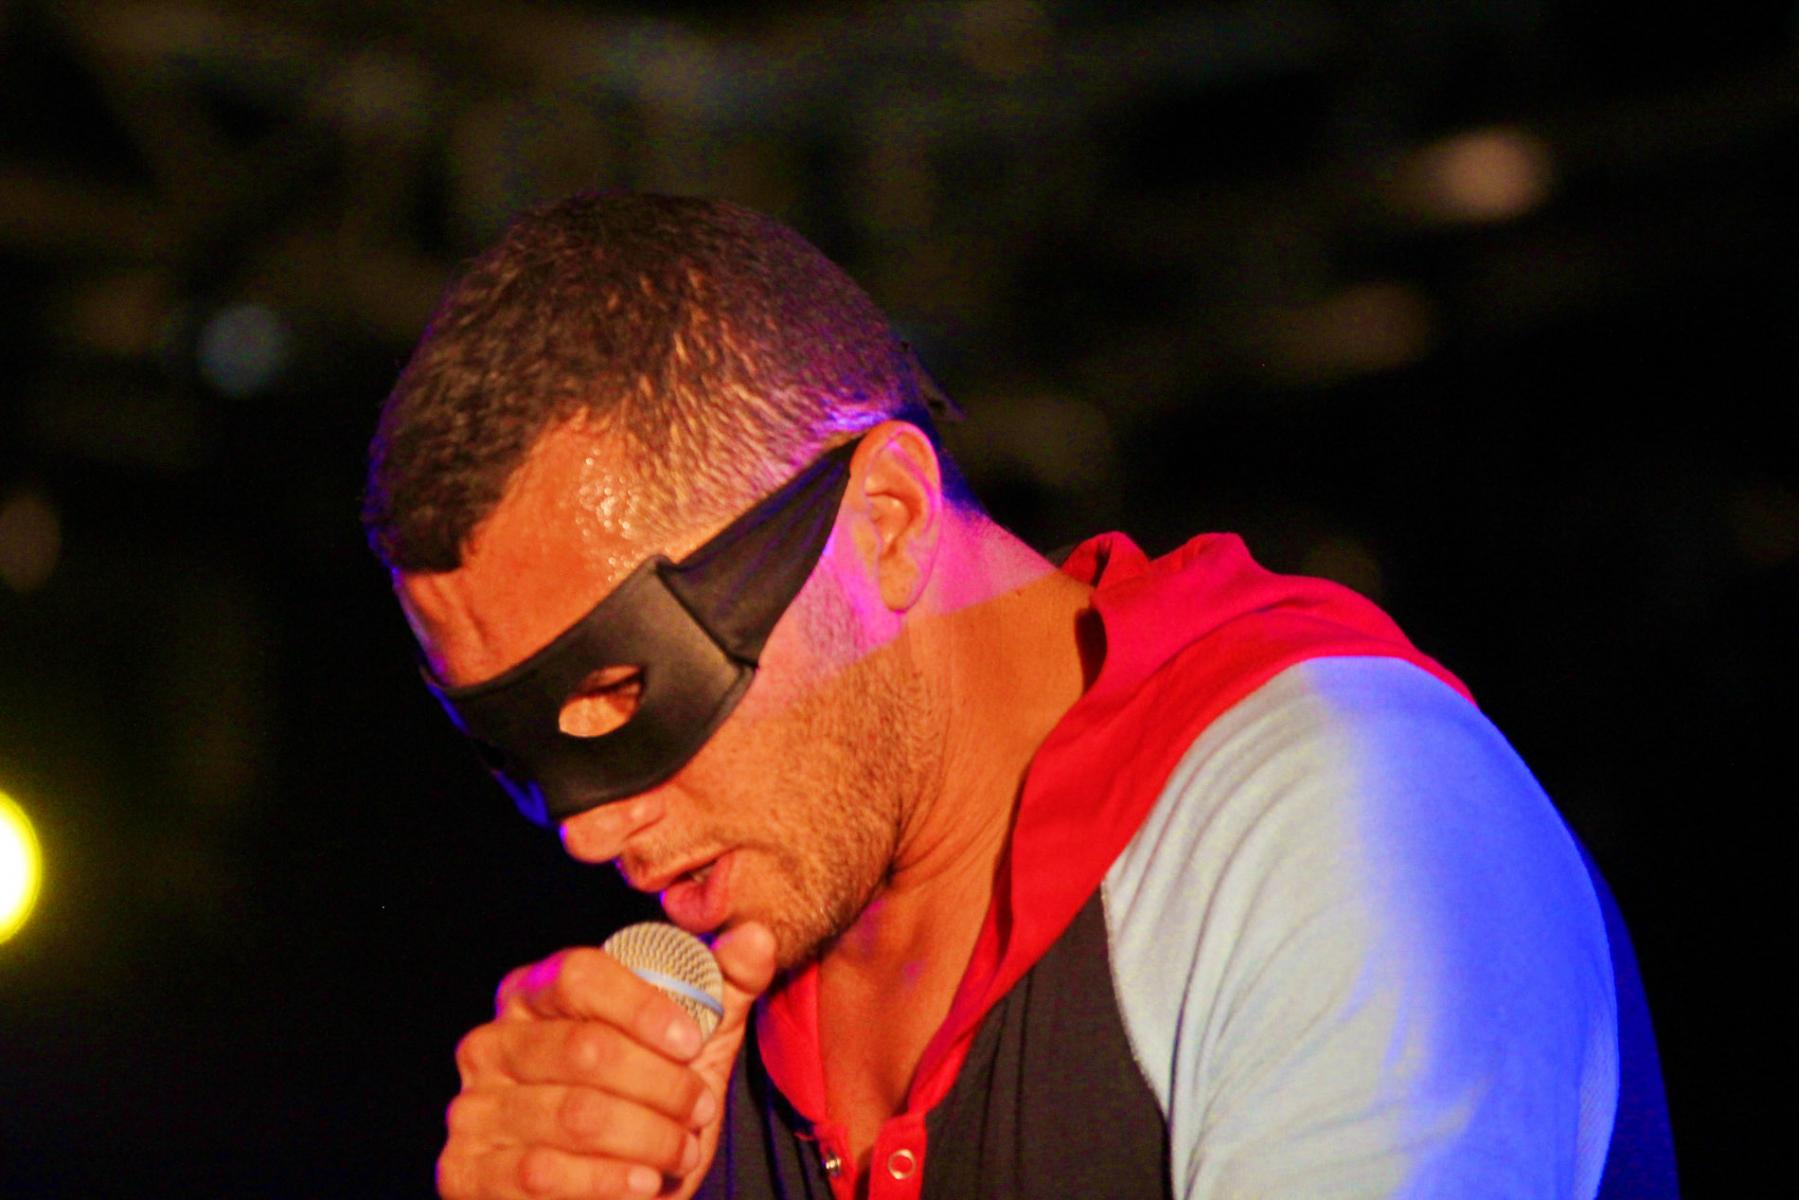 Jason Kerrison from The Babysitter's Circus - Homegrown - March 13